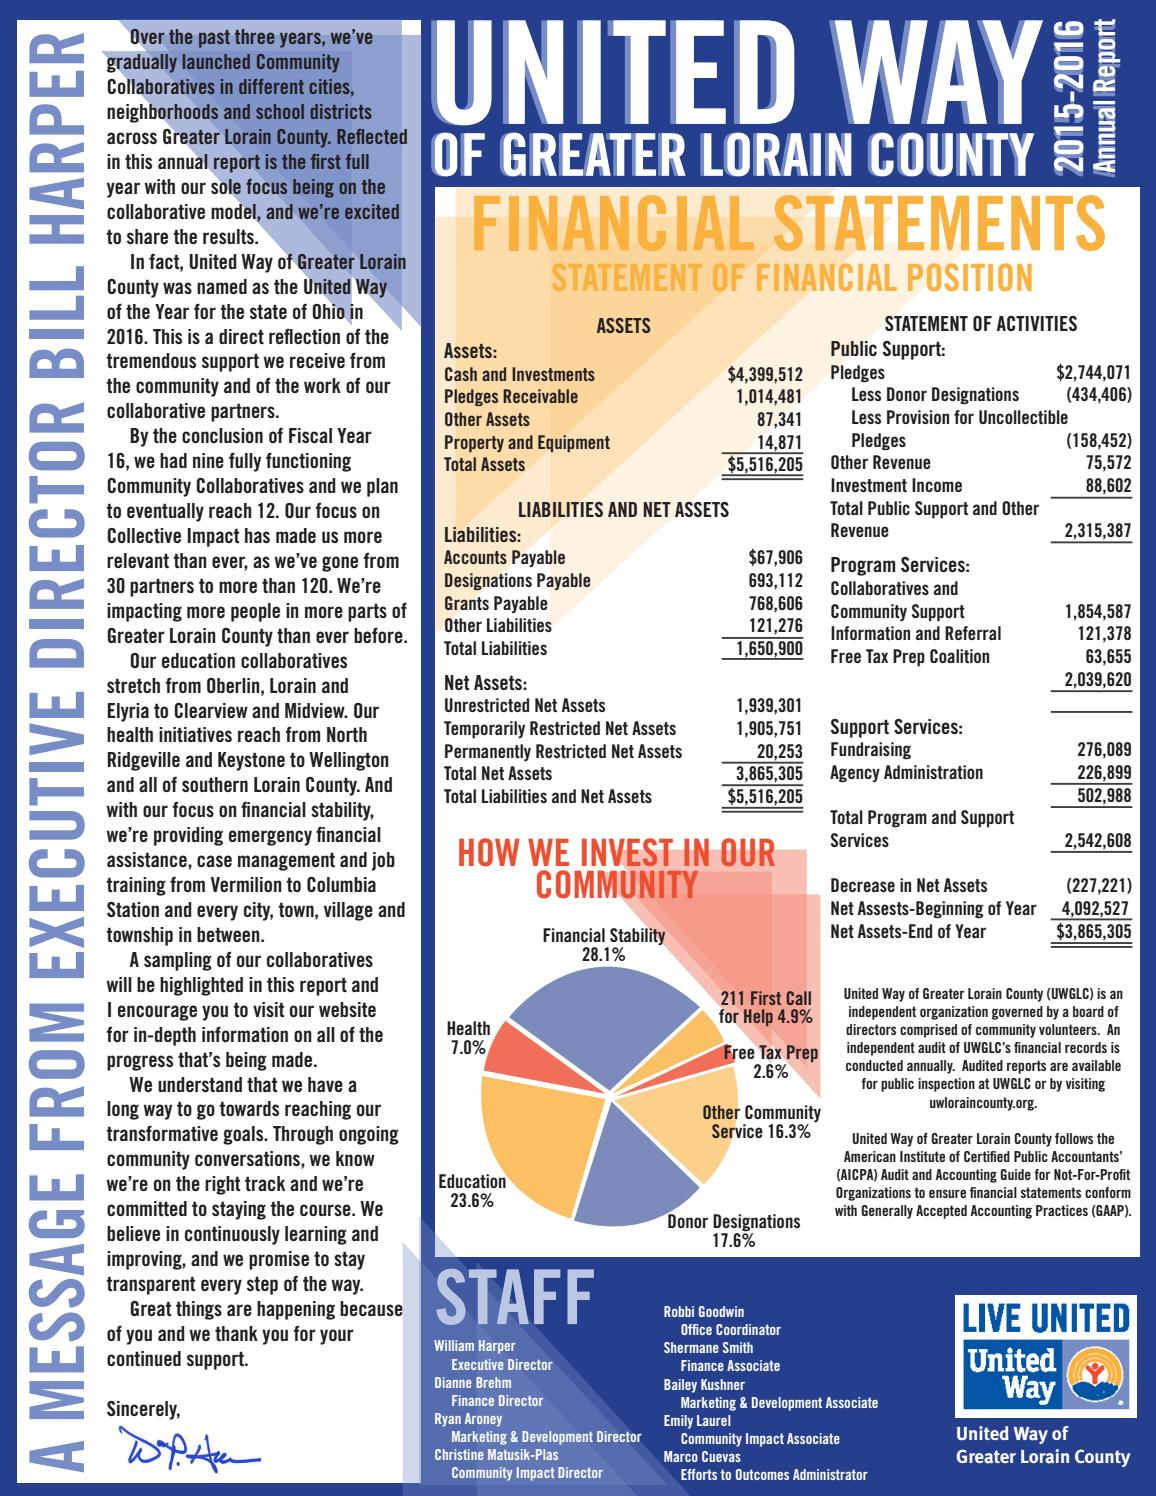 2015-16 united way of greater lorain county annual report by ryan